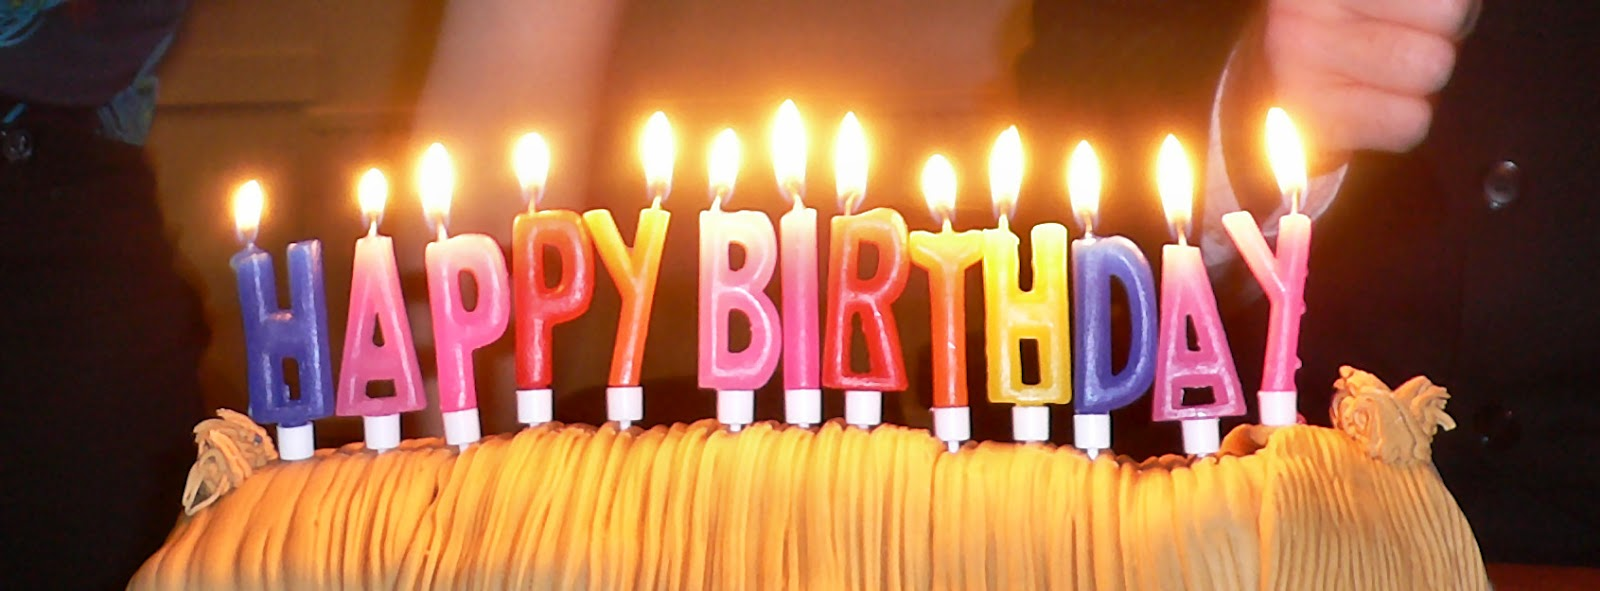 Birthday Sms Messages - Birthday Sms Quotes, Wishes | NewSmsFree